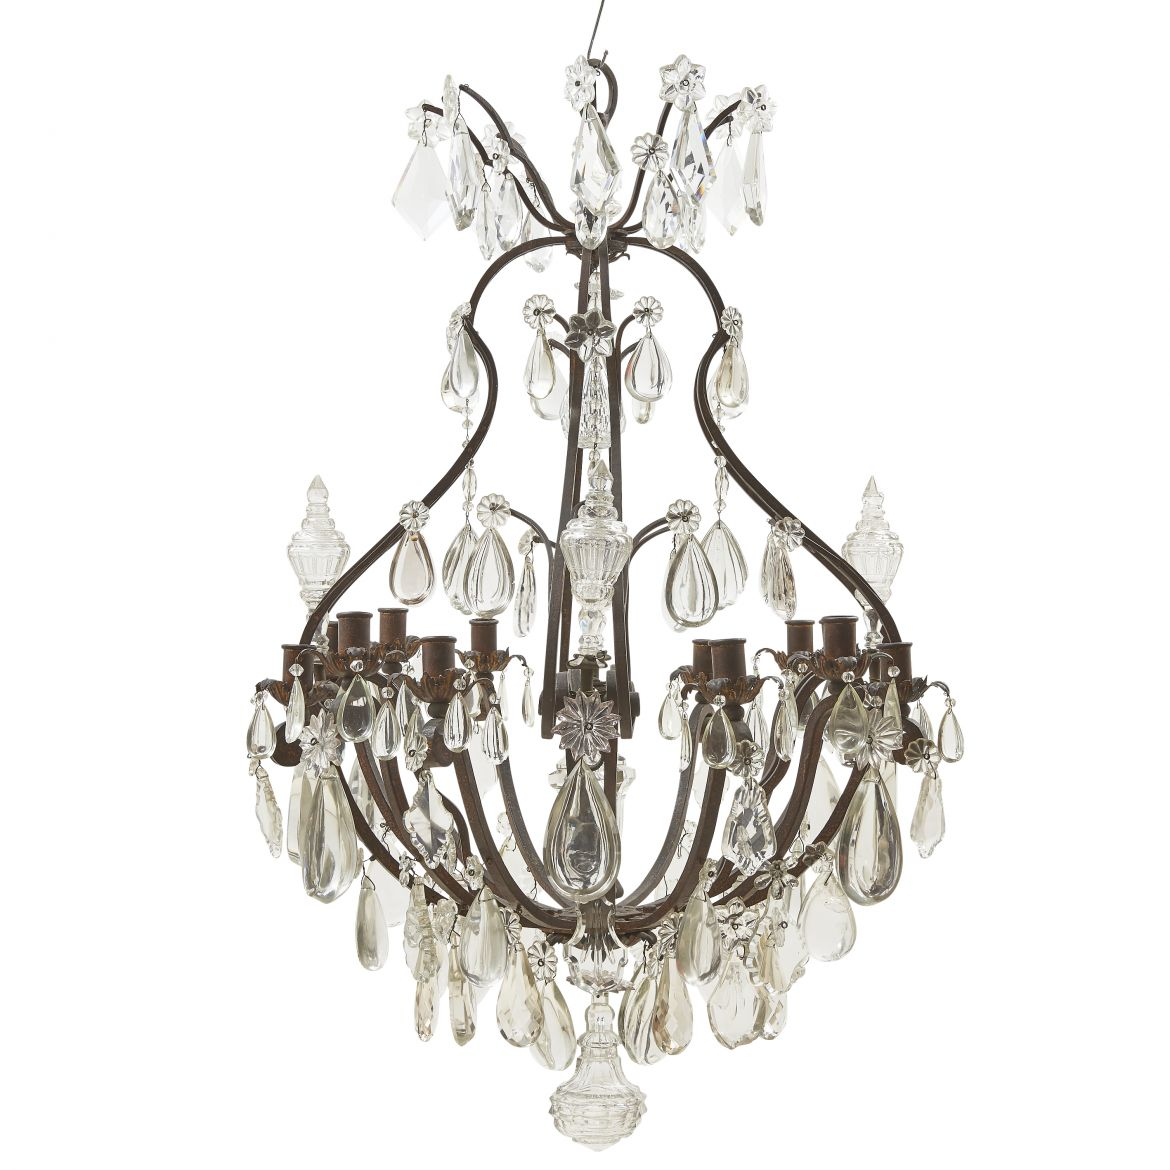 Wrought Iron Rectangular Chandelier Guinevere Antiques Wrought Iron Chandelier